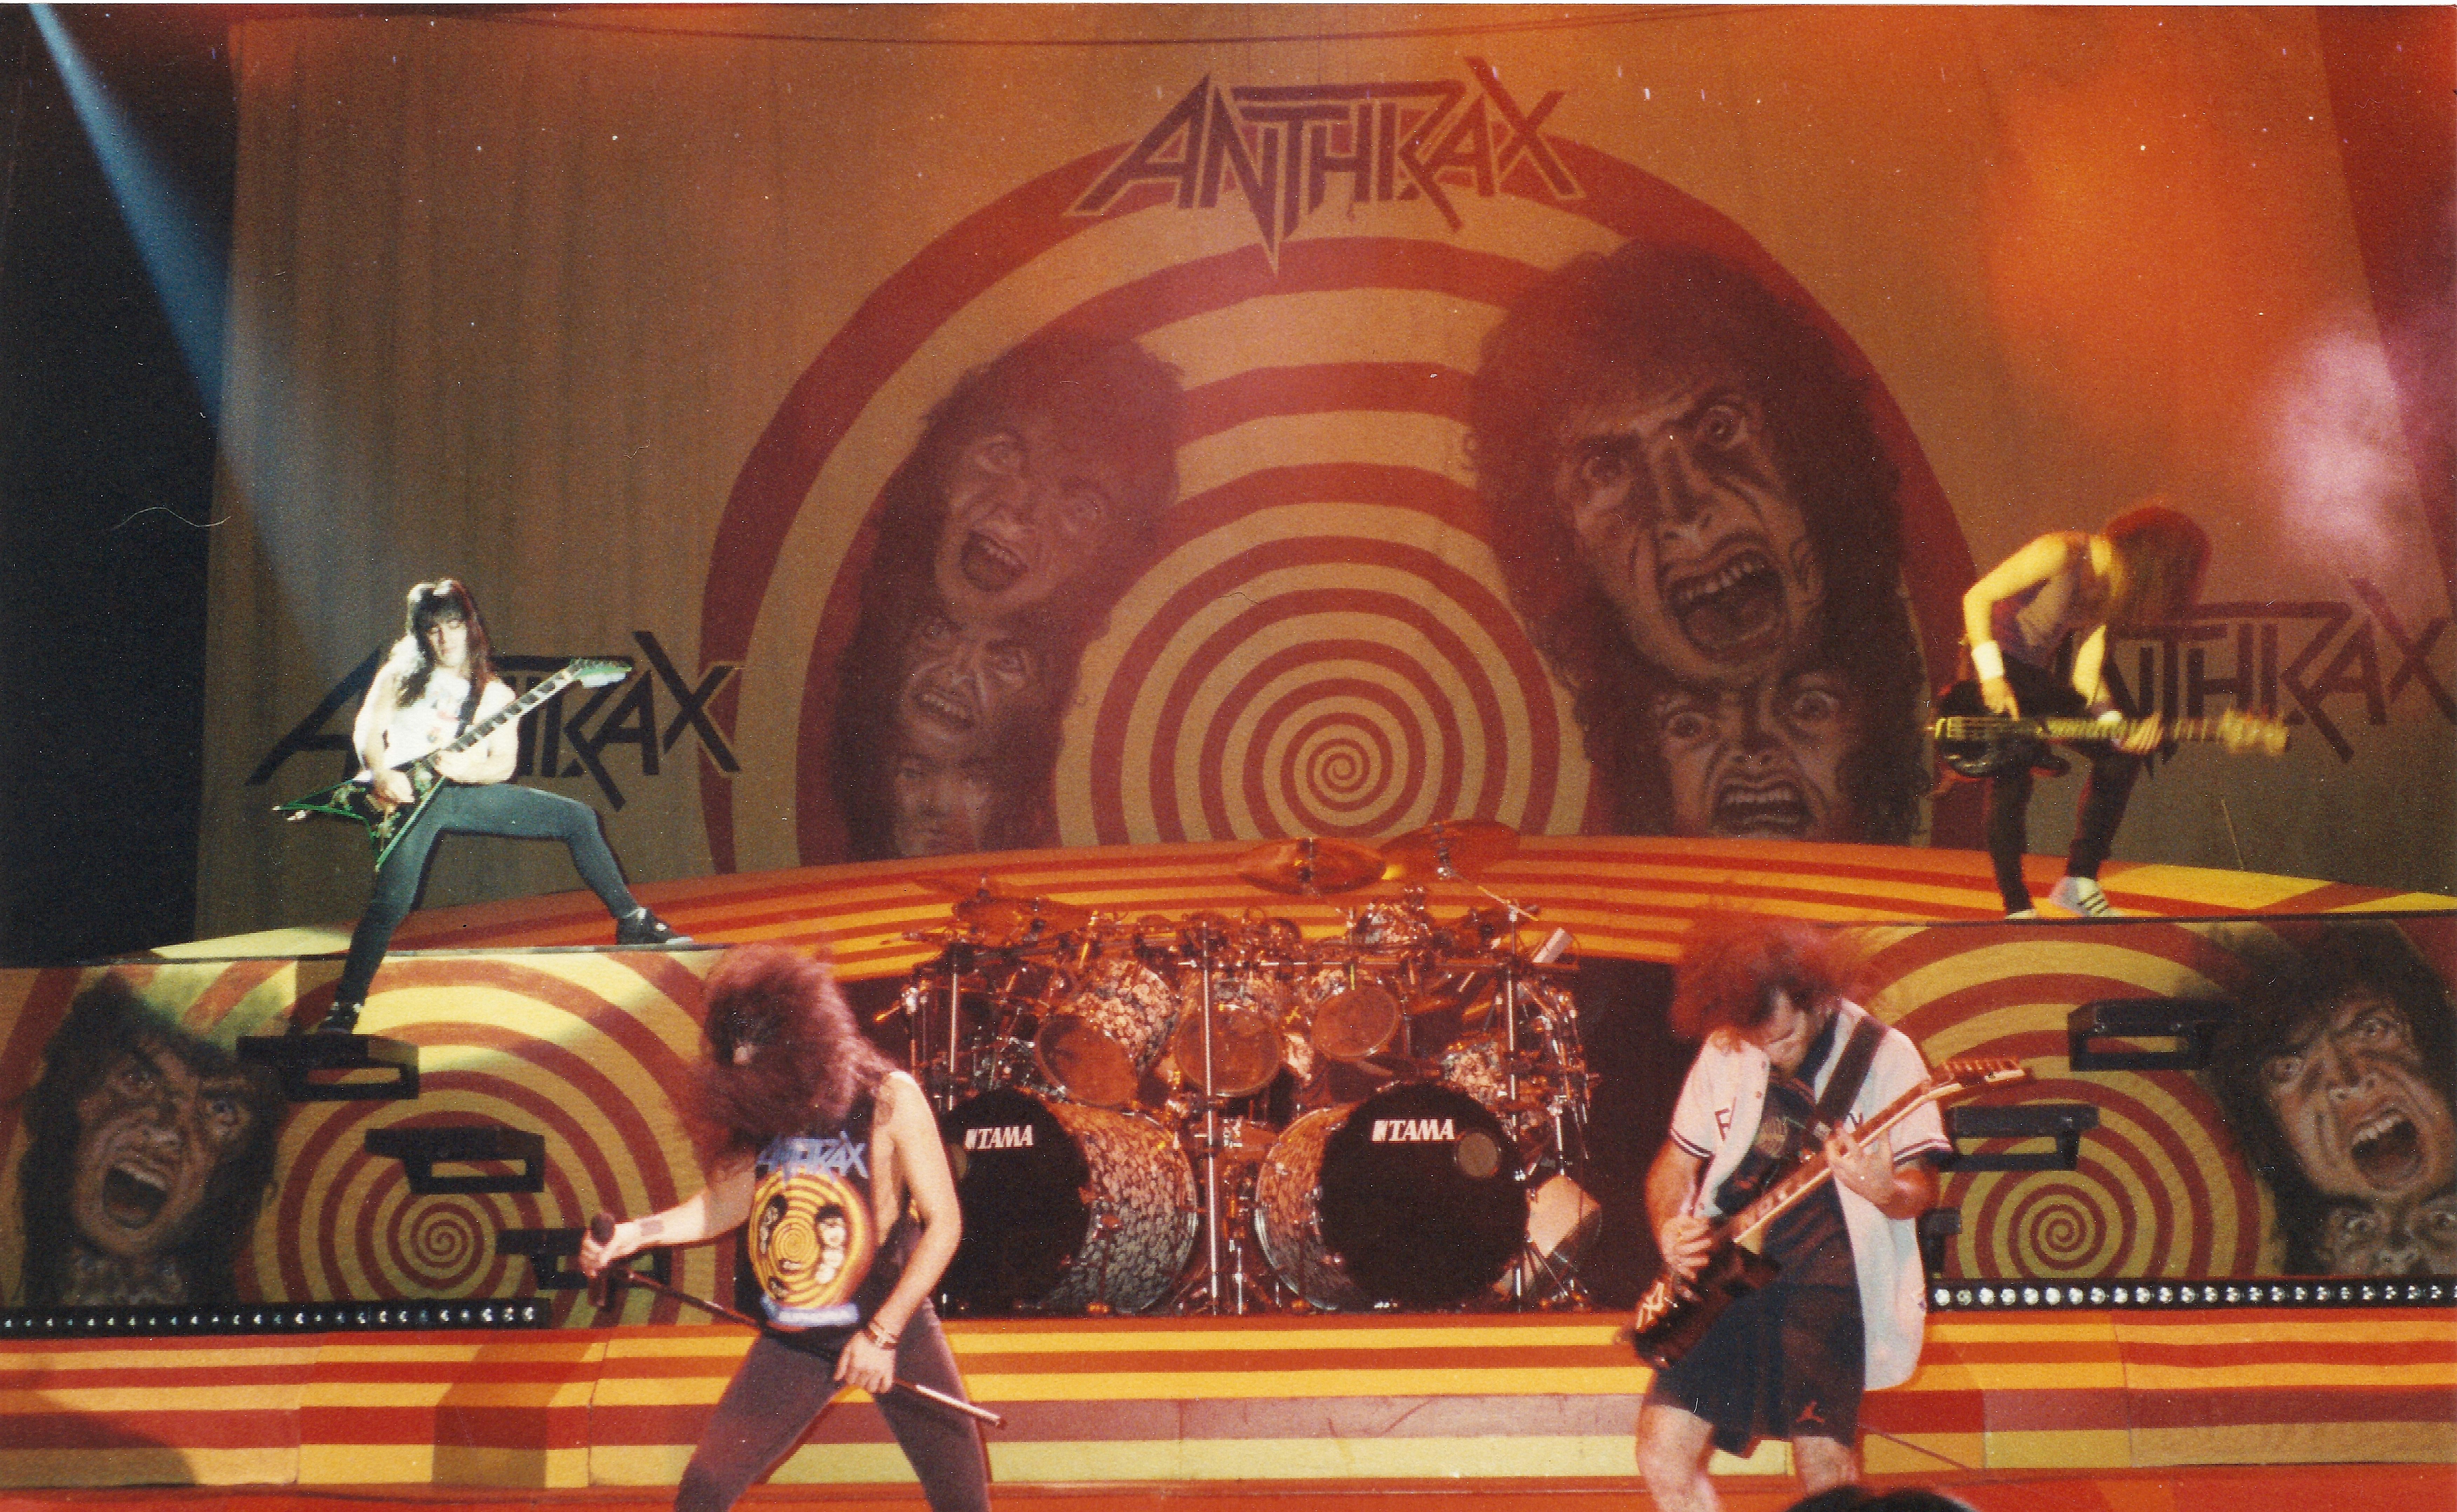 Anthrax Hammersmith 14 March 1989 Every Record Tells A Story